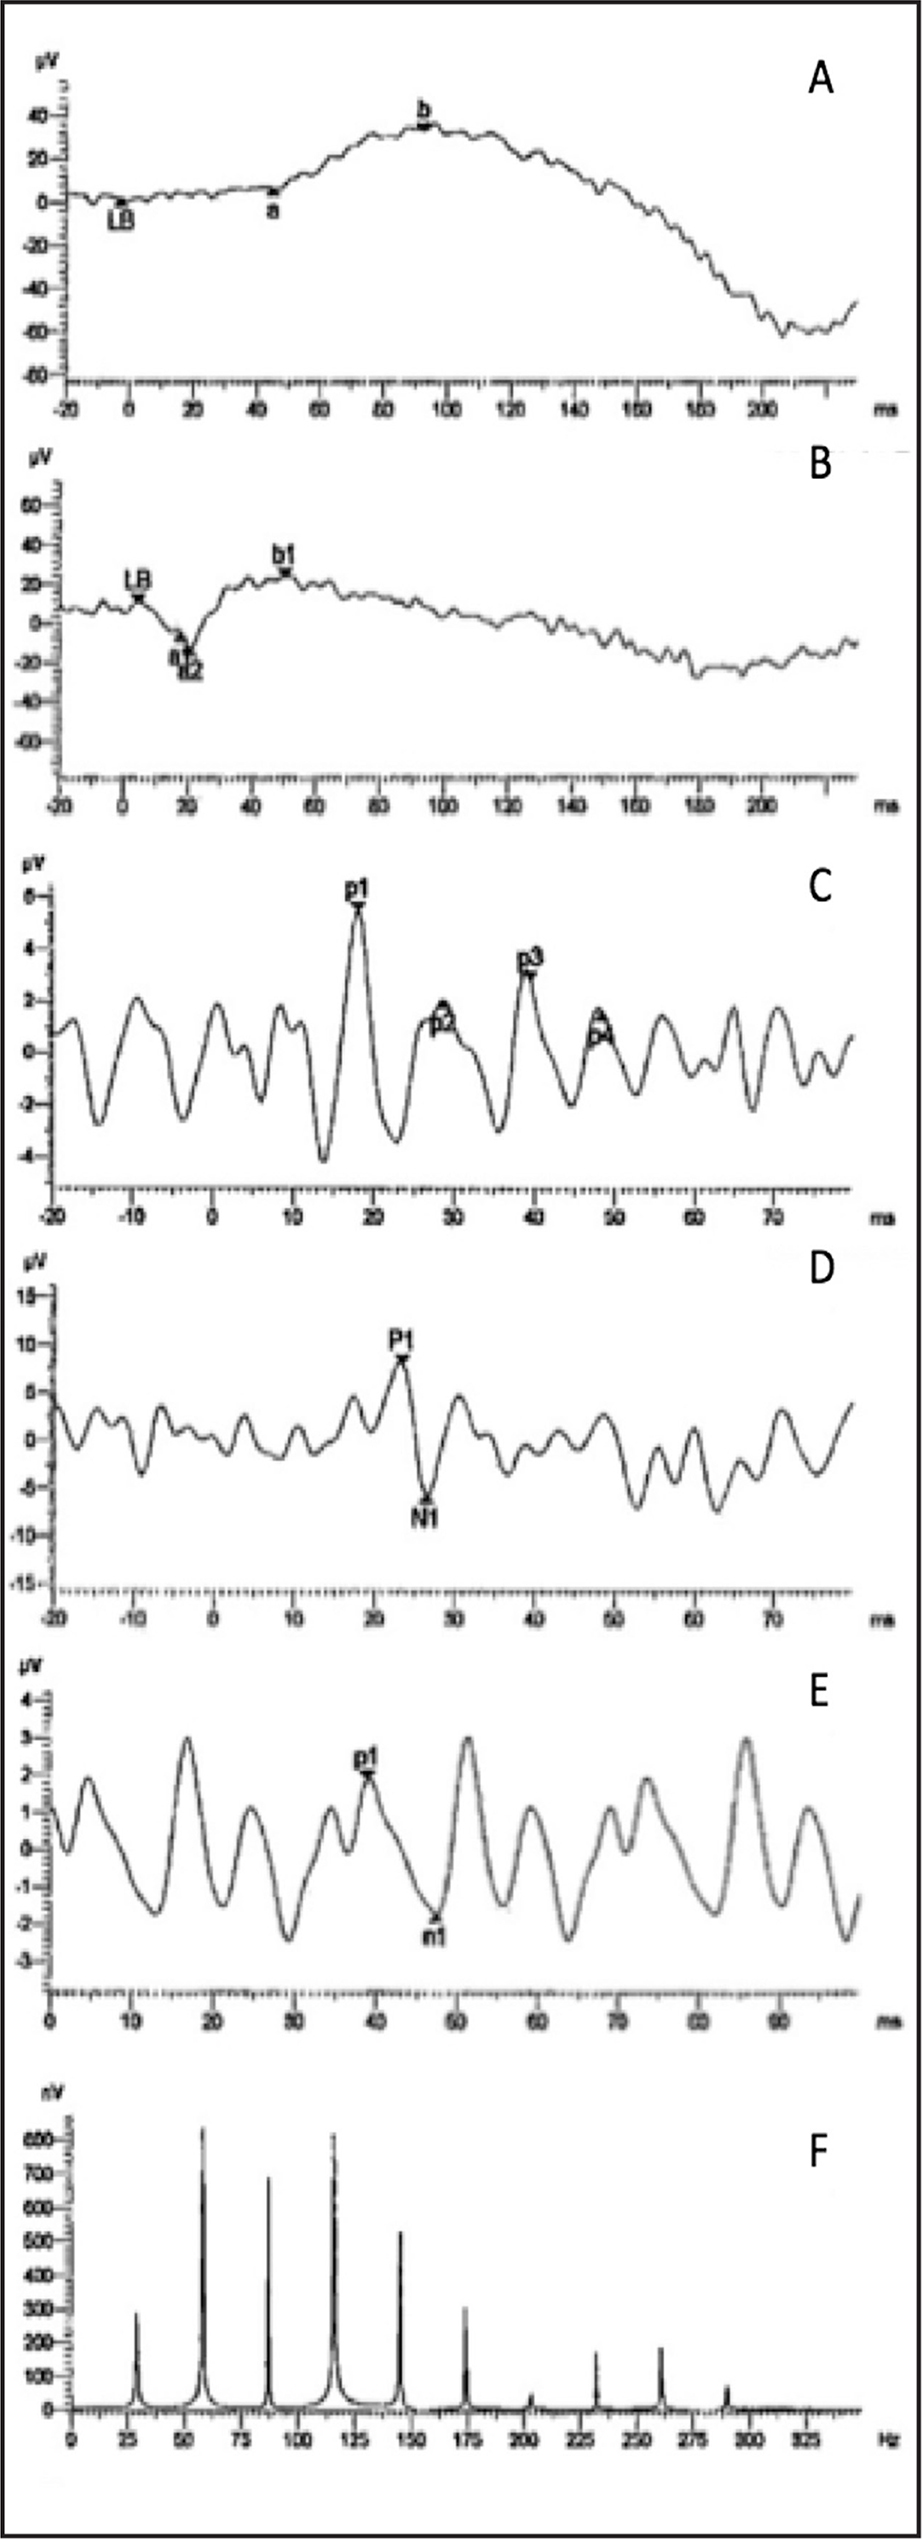 Full-field electroretinogram with decreased amplitude of cones and rods can be observed. (A) Rod response, (B) maximum response, (C) oscillatory potentials, (D) cone response, (E) 30-Hz flicker, and (F) frequency spectrum.